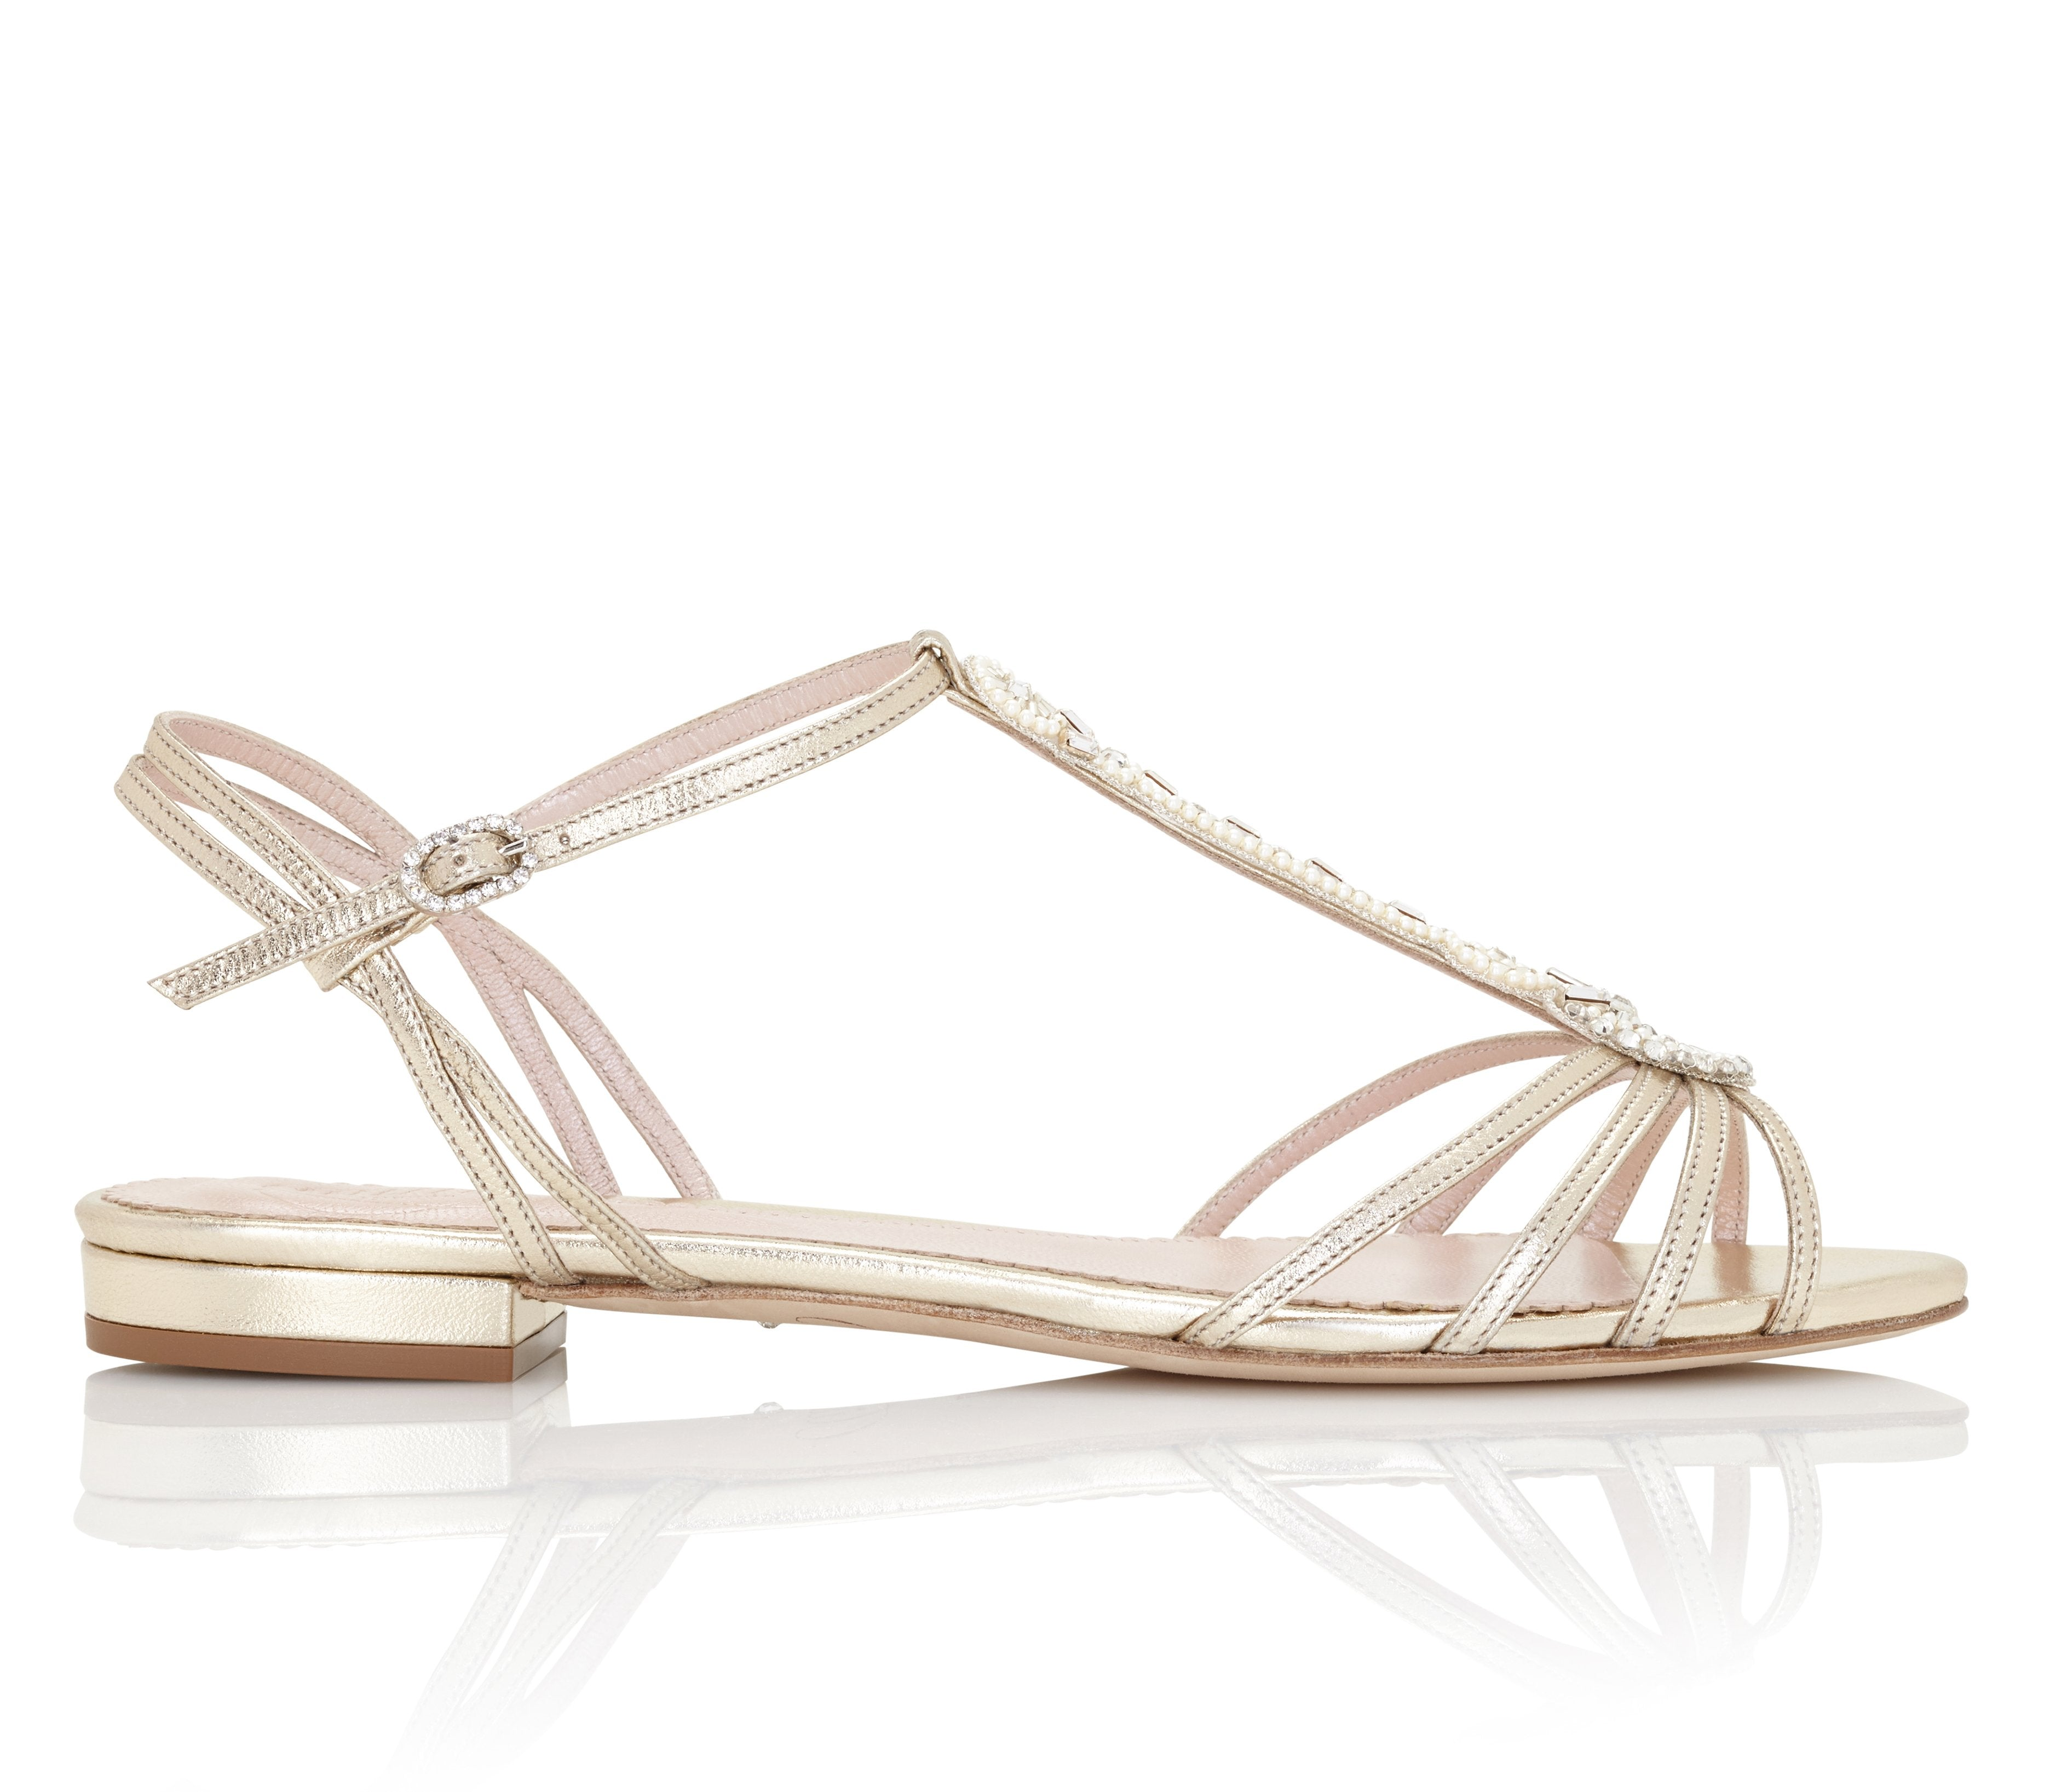 Flat Wedding Sandal for Destination Weddings Created By Emmy London